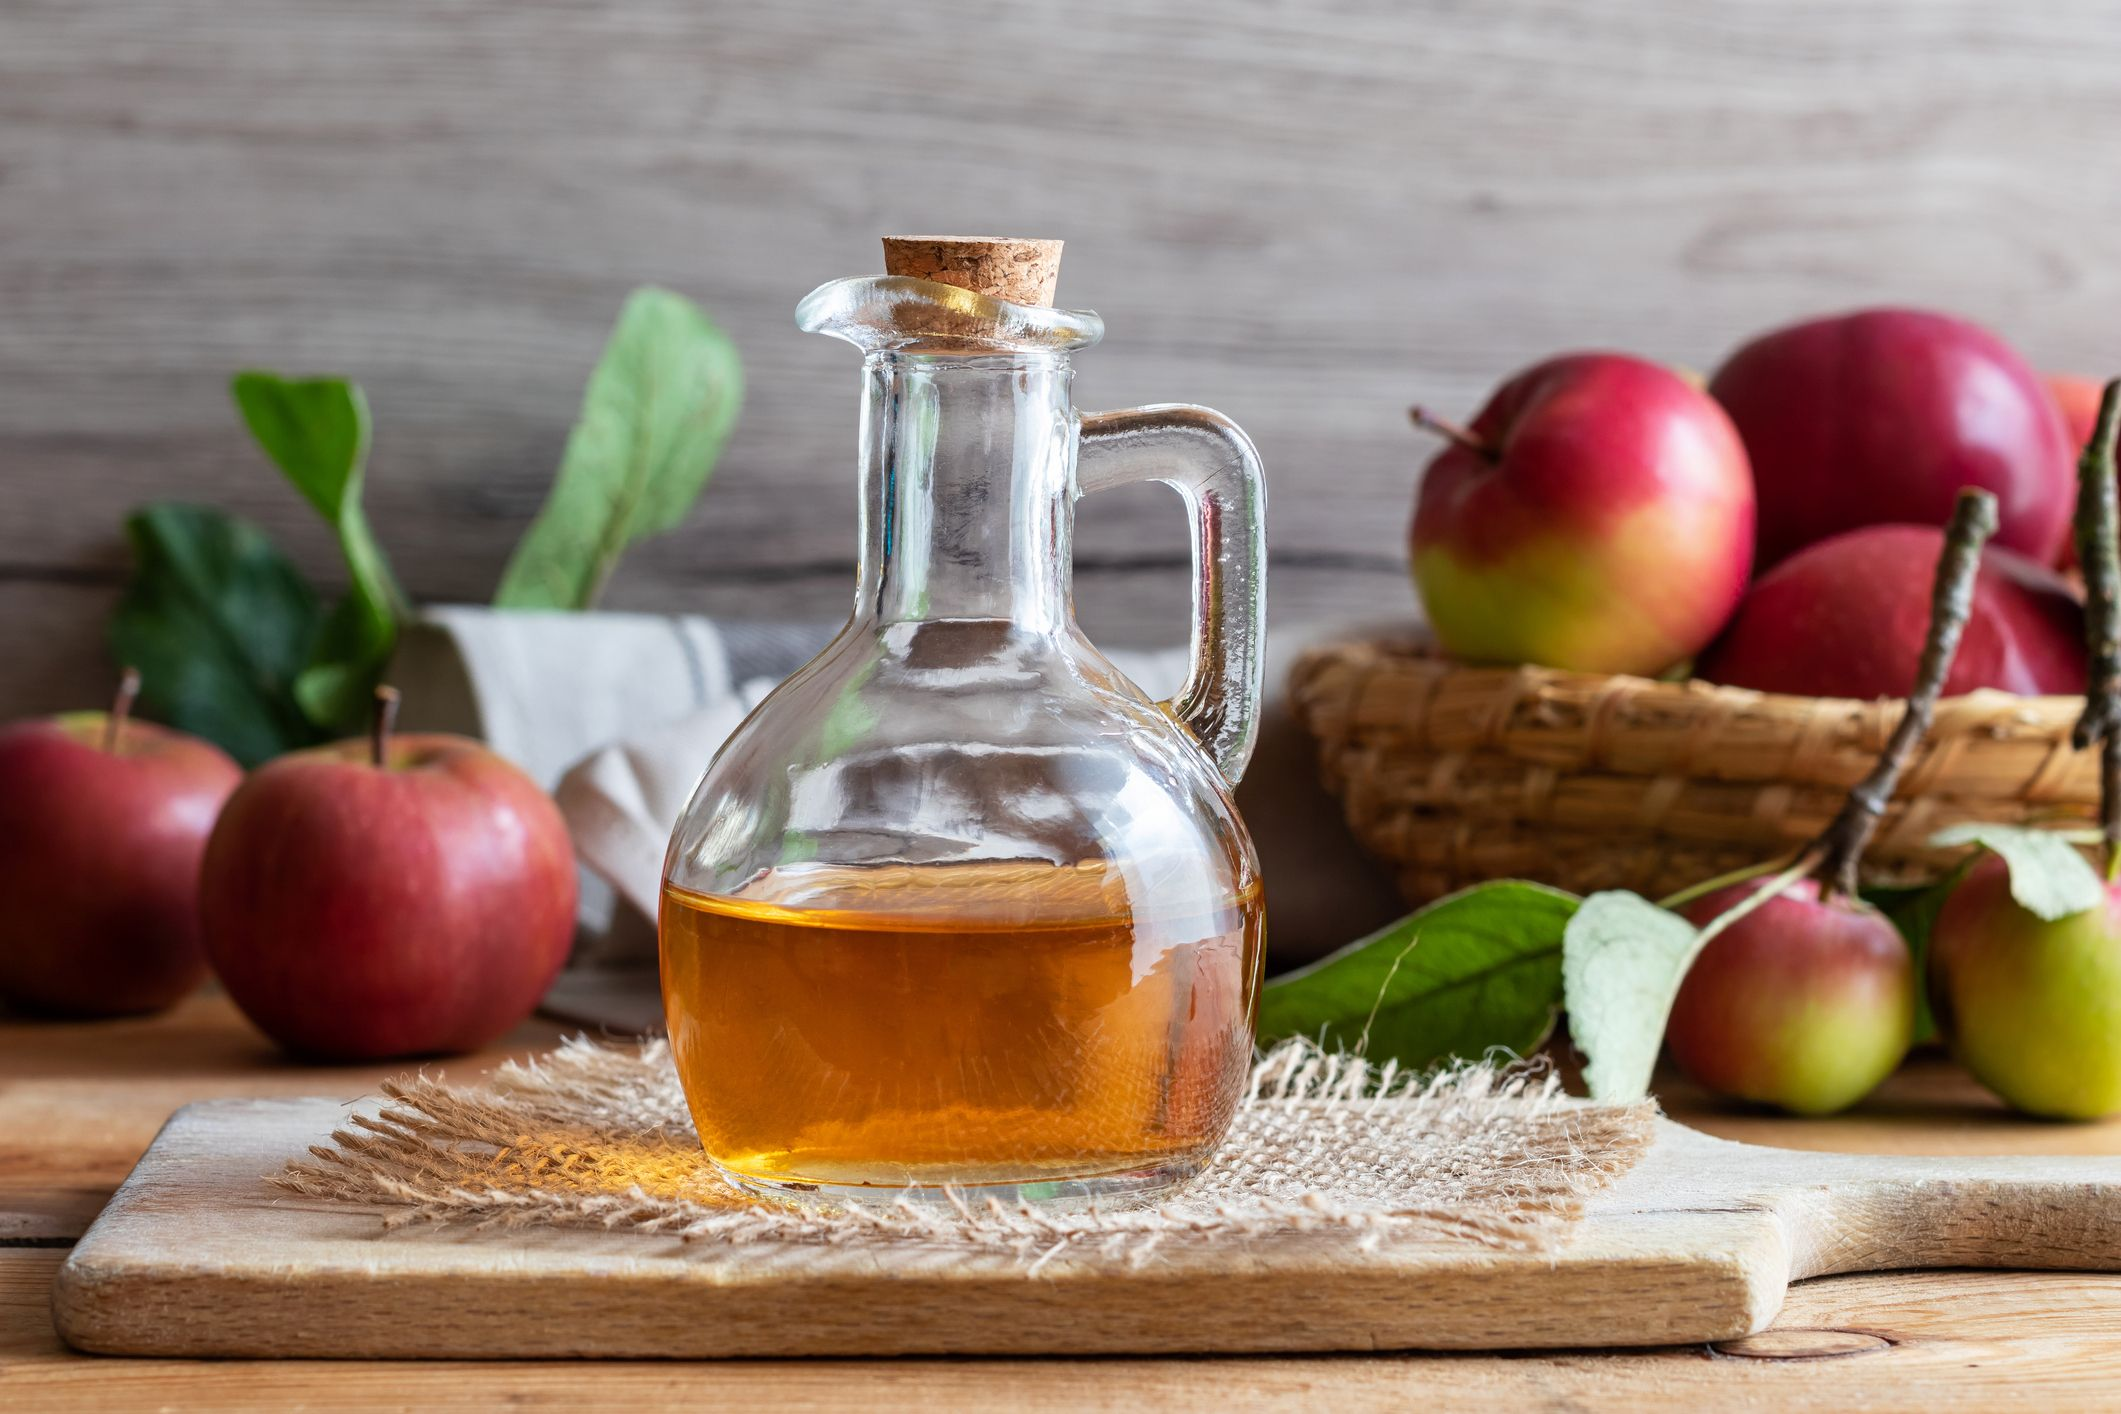 How much vinegar to drink daily for weight loss